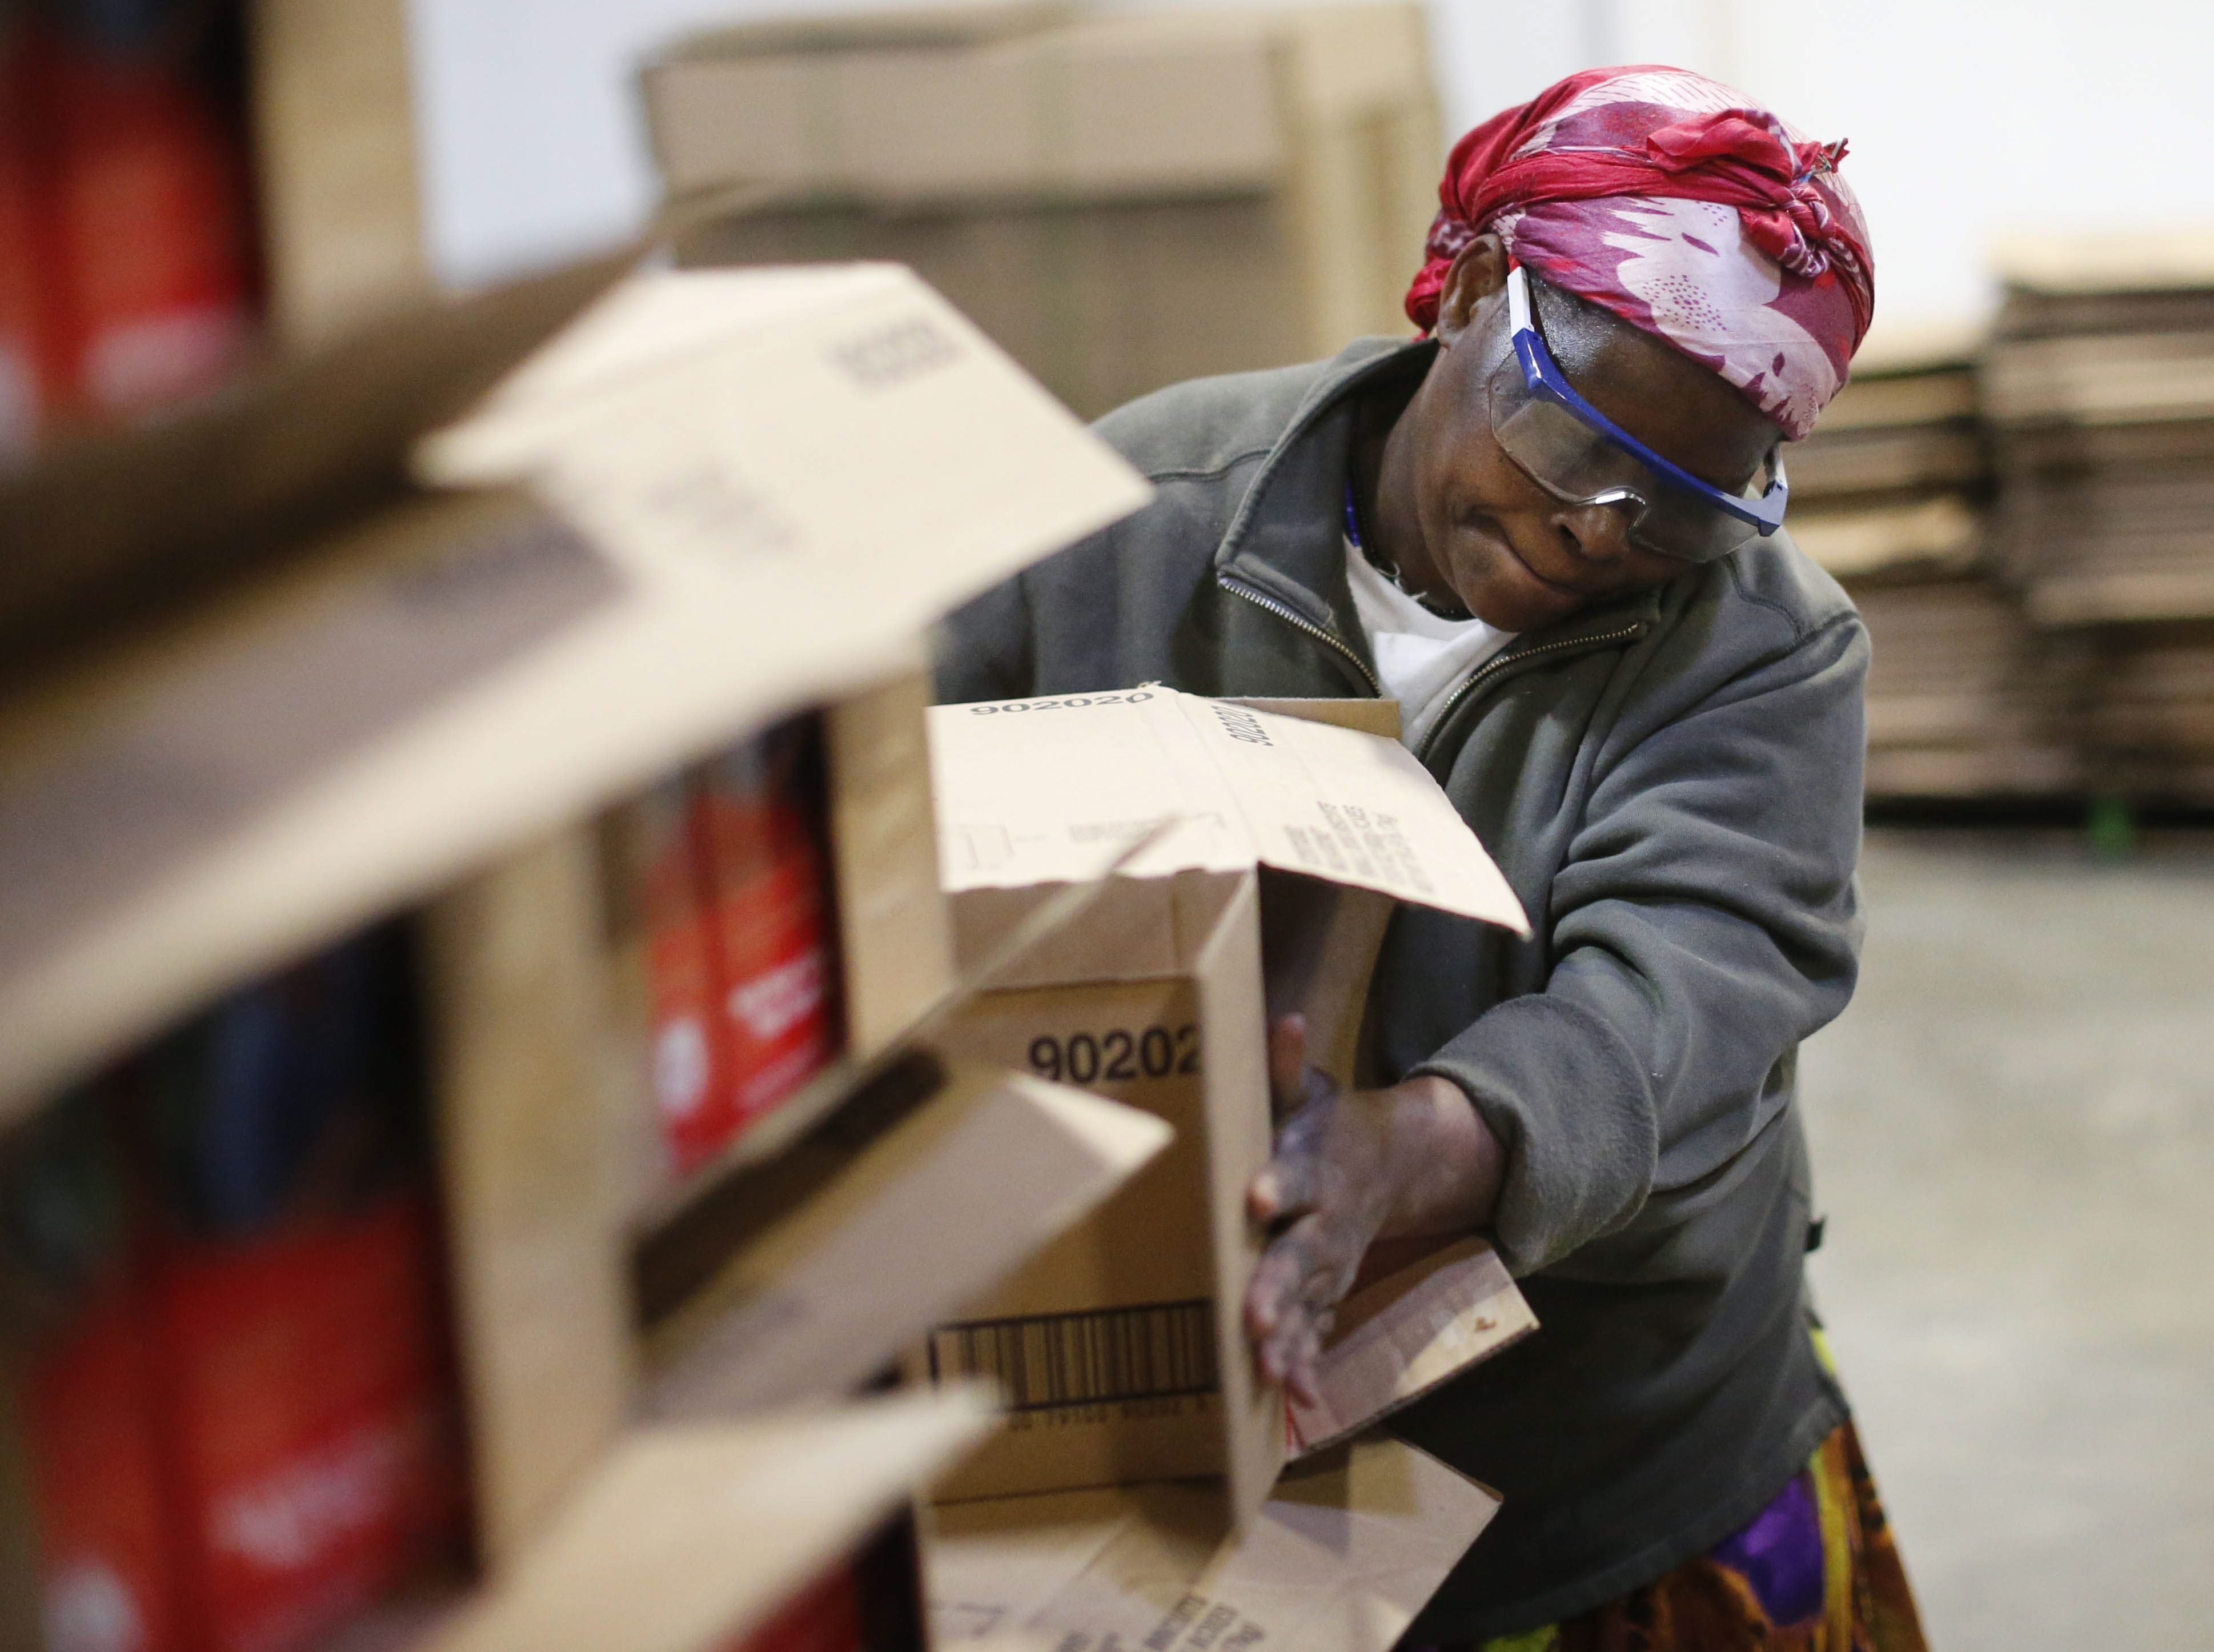 Biljana Bilkeyr, a worker from Diversified Labor Solutions, a program run by the Cantalician Center works on a packing operation at Sonwil Distribution in Cheektowaga, Monday, Nov. 23, 2015.  (Derek Gee/Buffalo News)